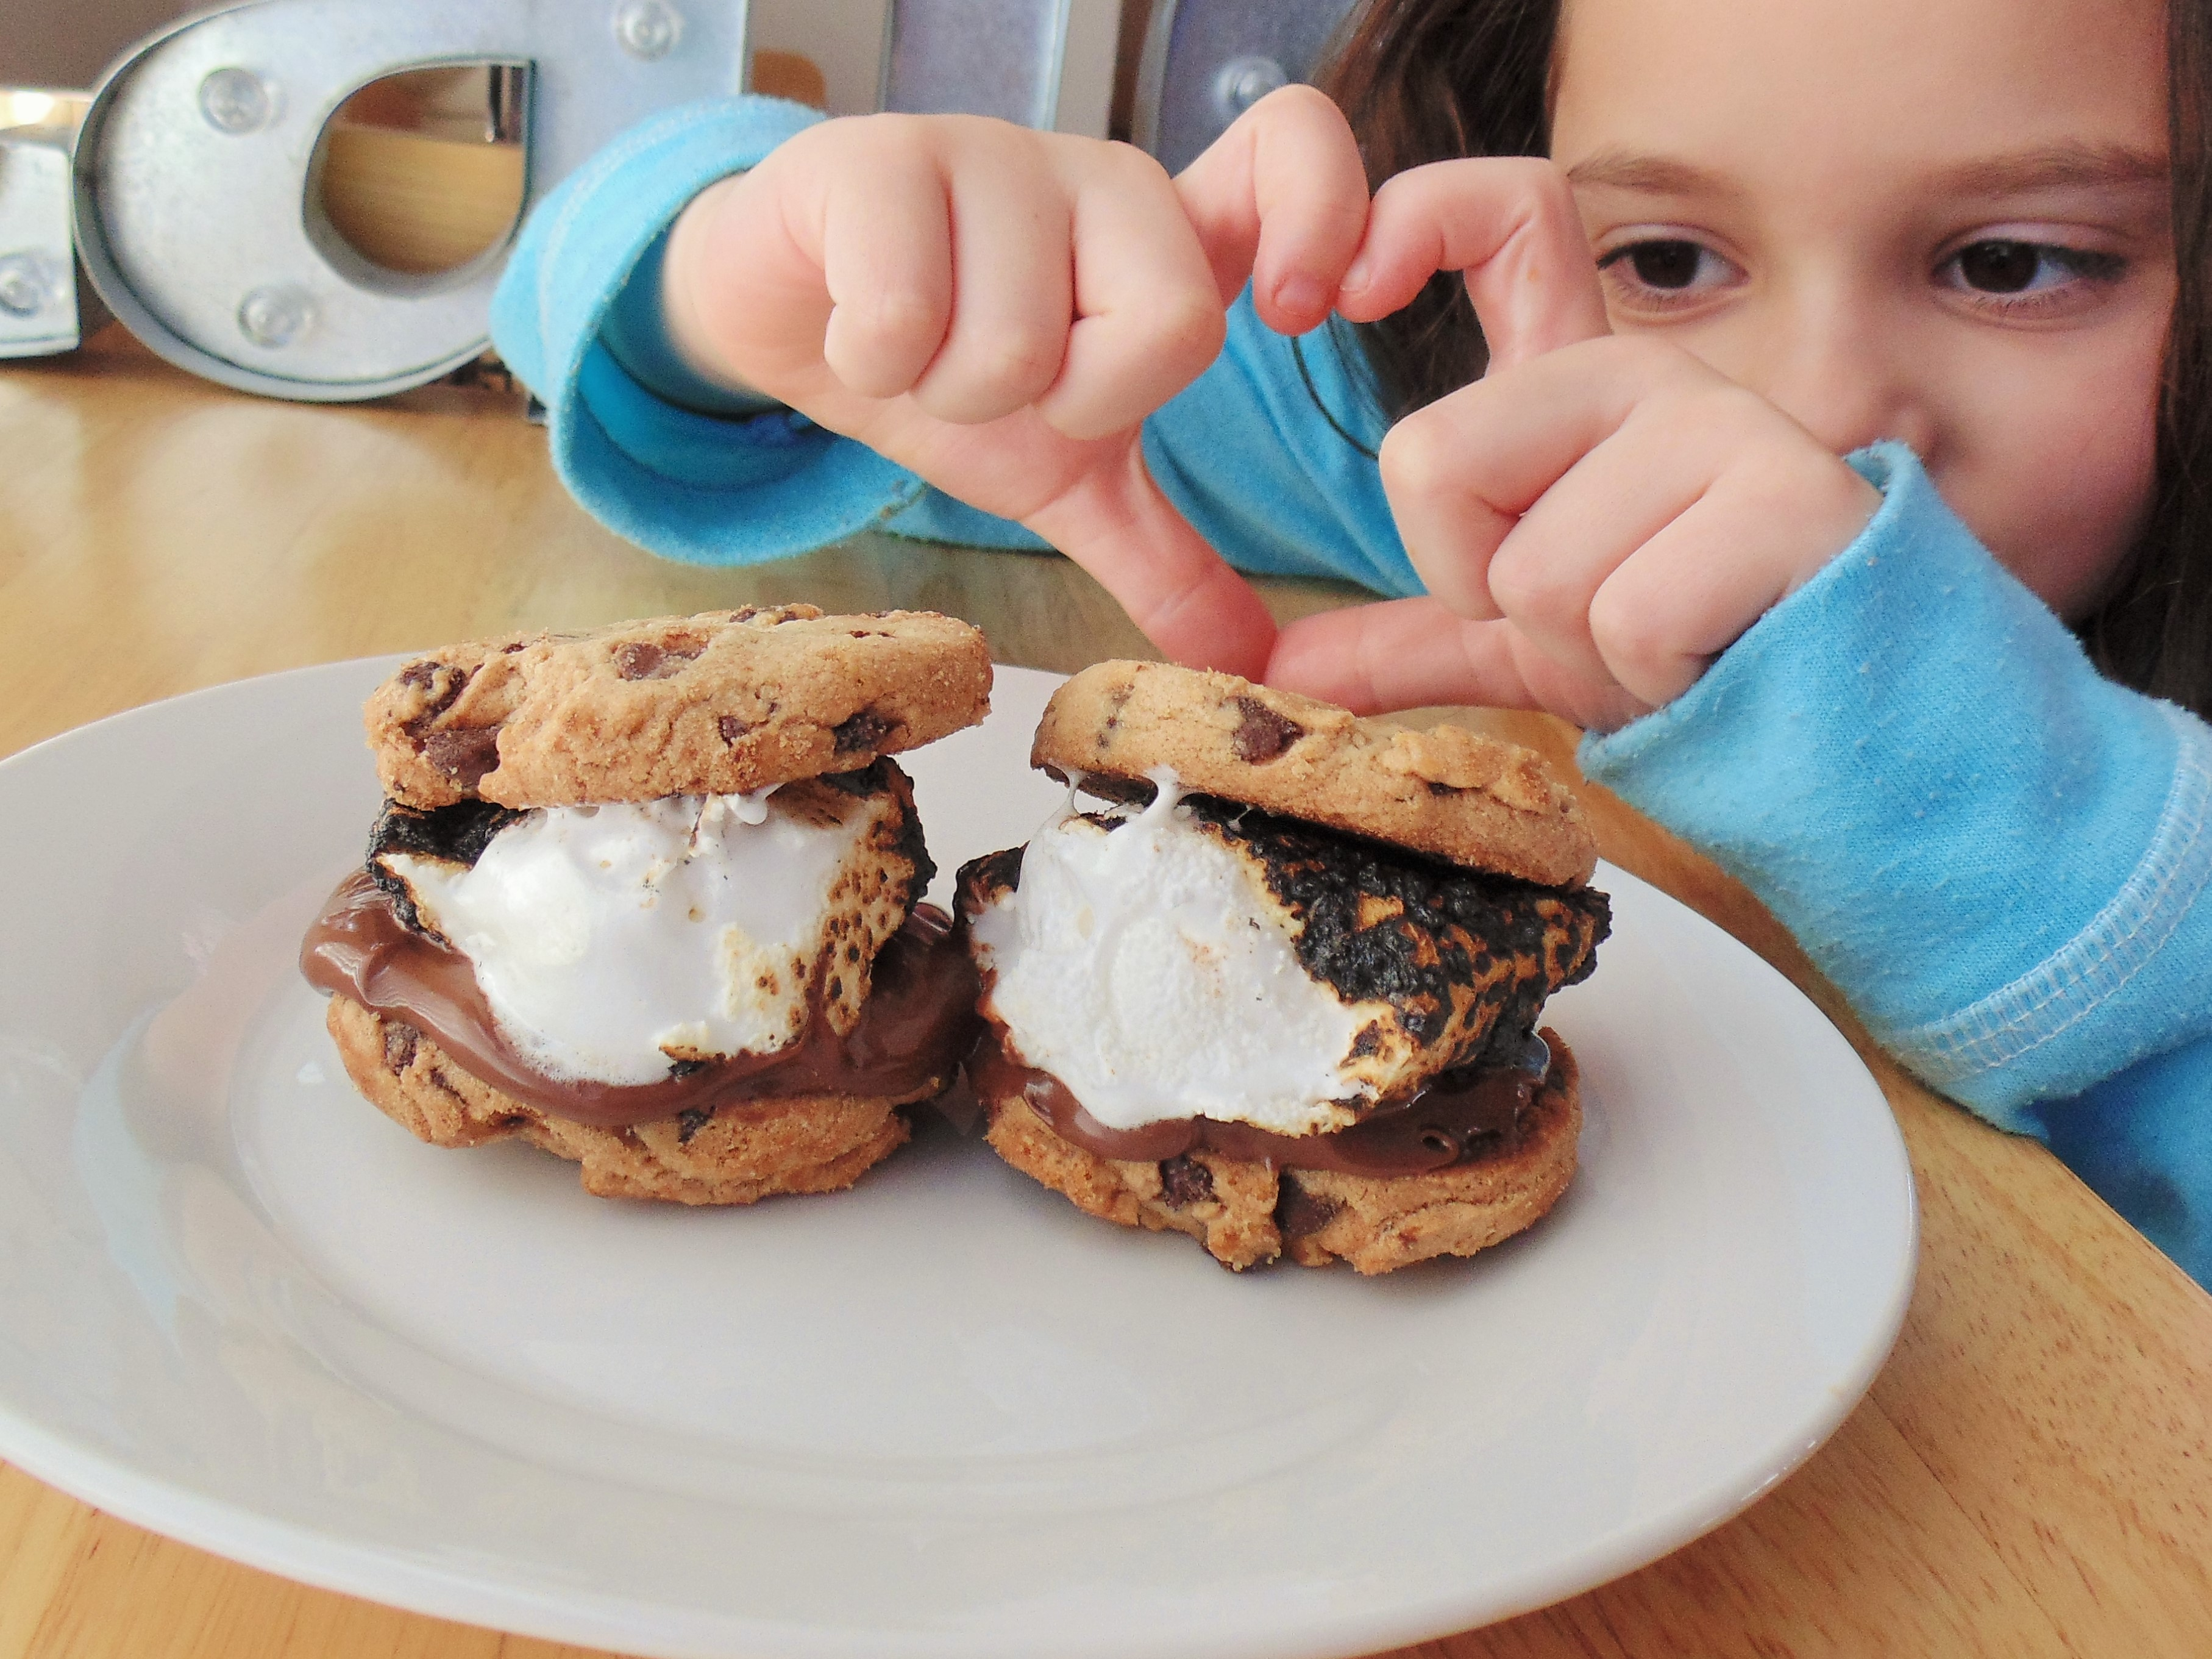 """""""S'mores are a way of life for my family. We are always looking for a new way to enjoy them while camping. This variation is one of our favorites,"""" says recipe creator Faith. """"If you have a sweet tooth for chocolate and an average s'more just won't cut it, this one definitely will!"""""""